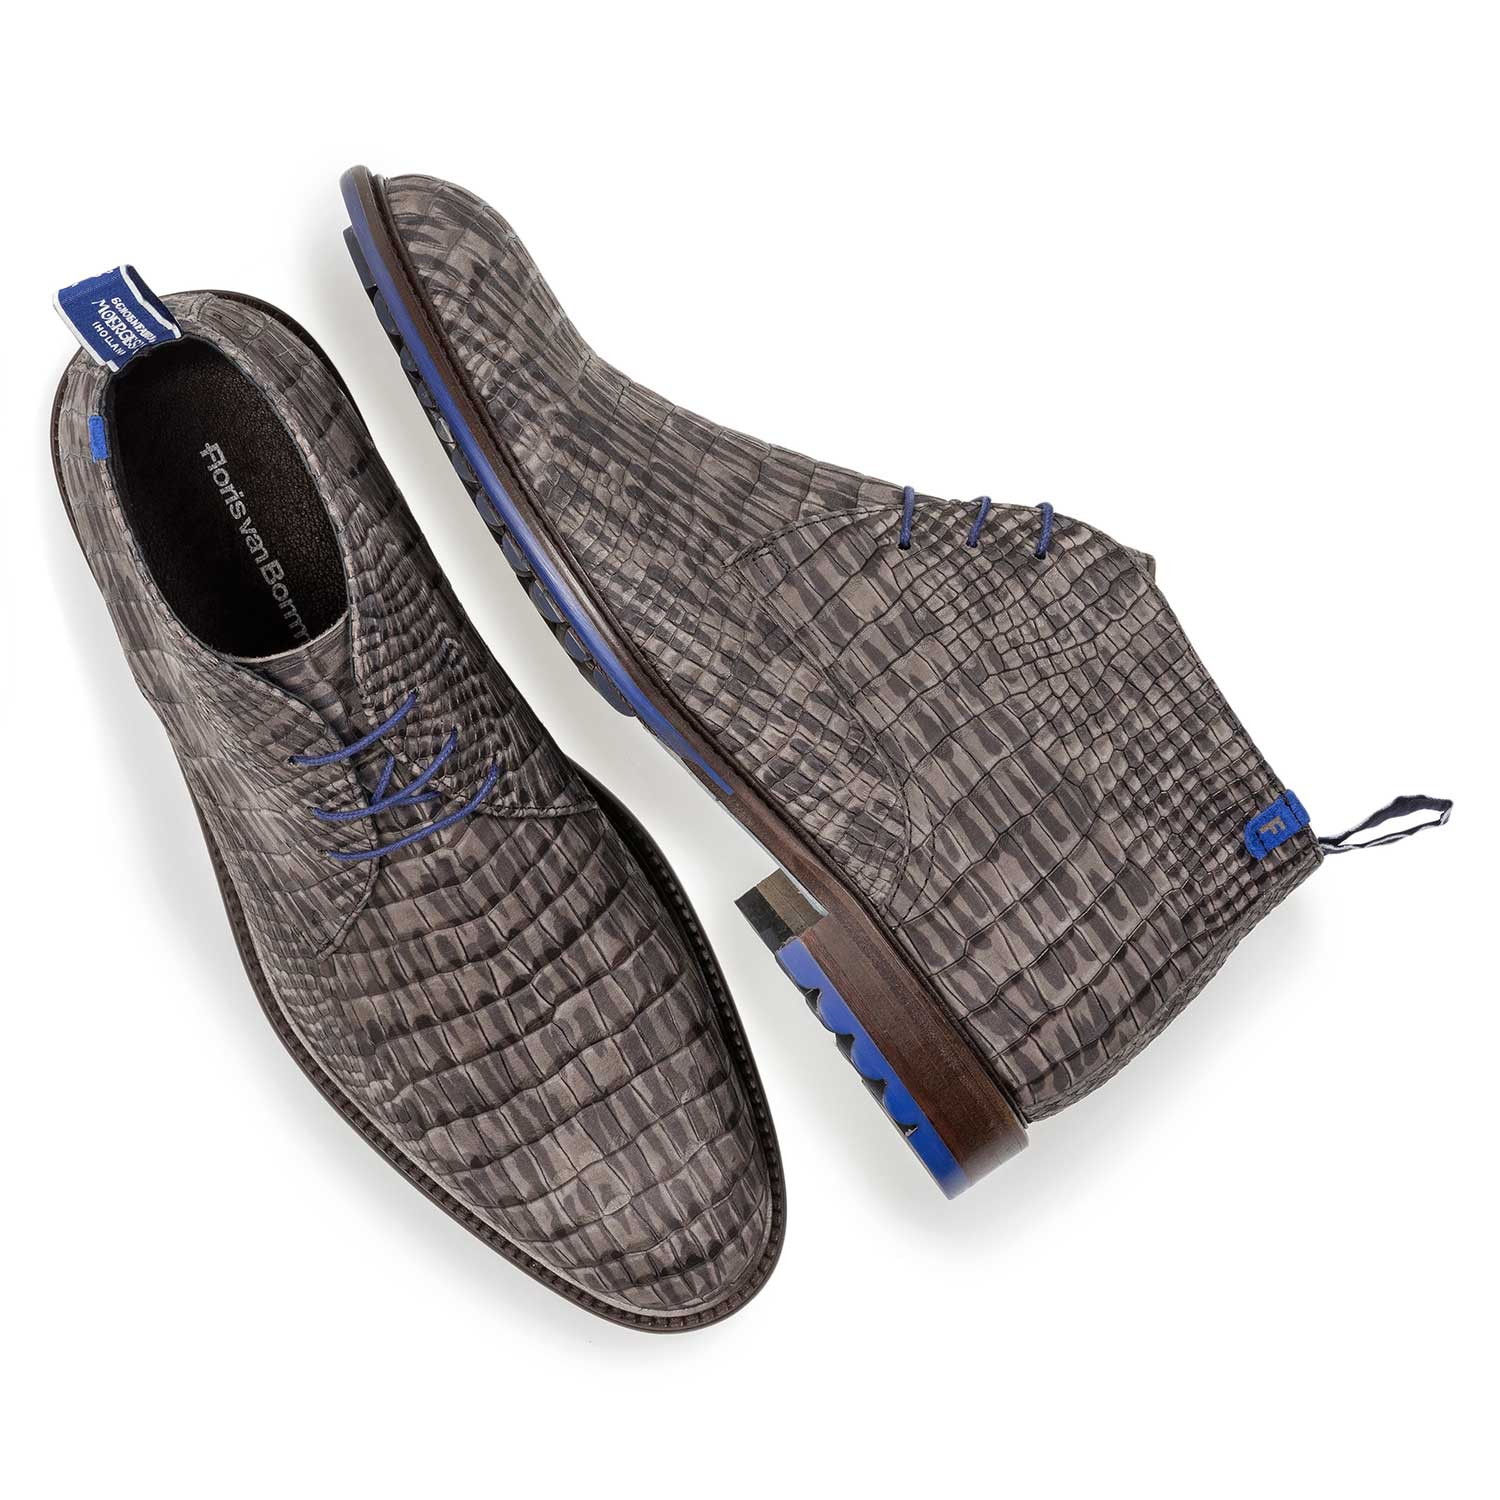 10203/23 - Dark grey nubuck leather lace shoe with croco print